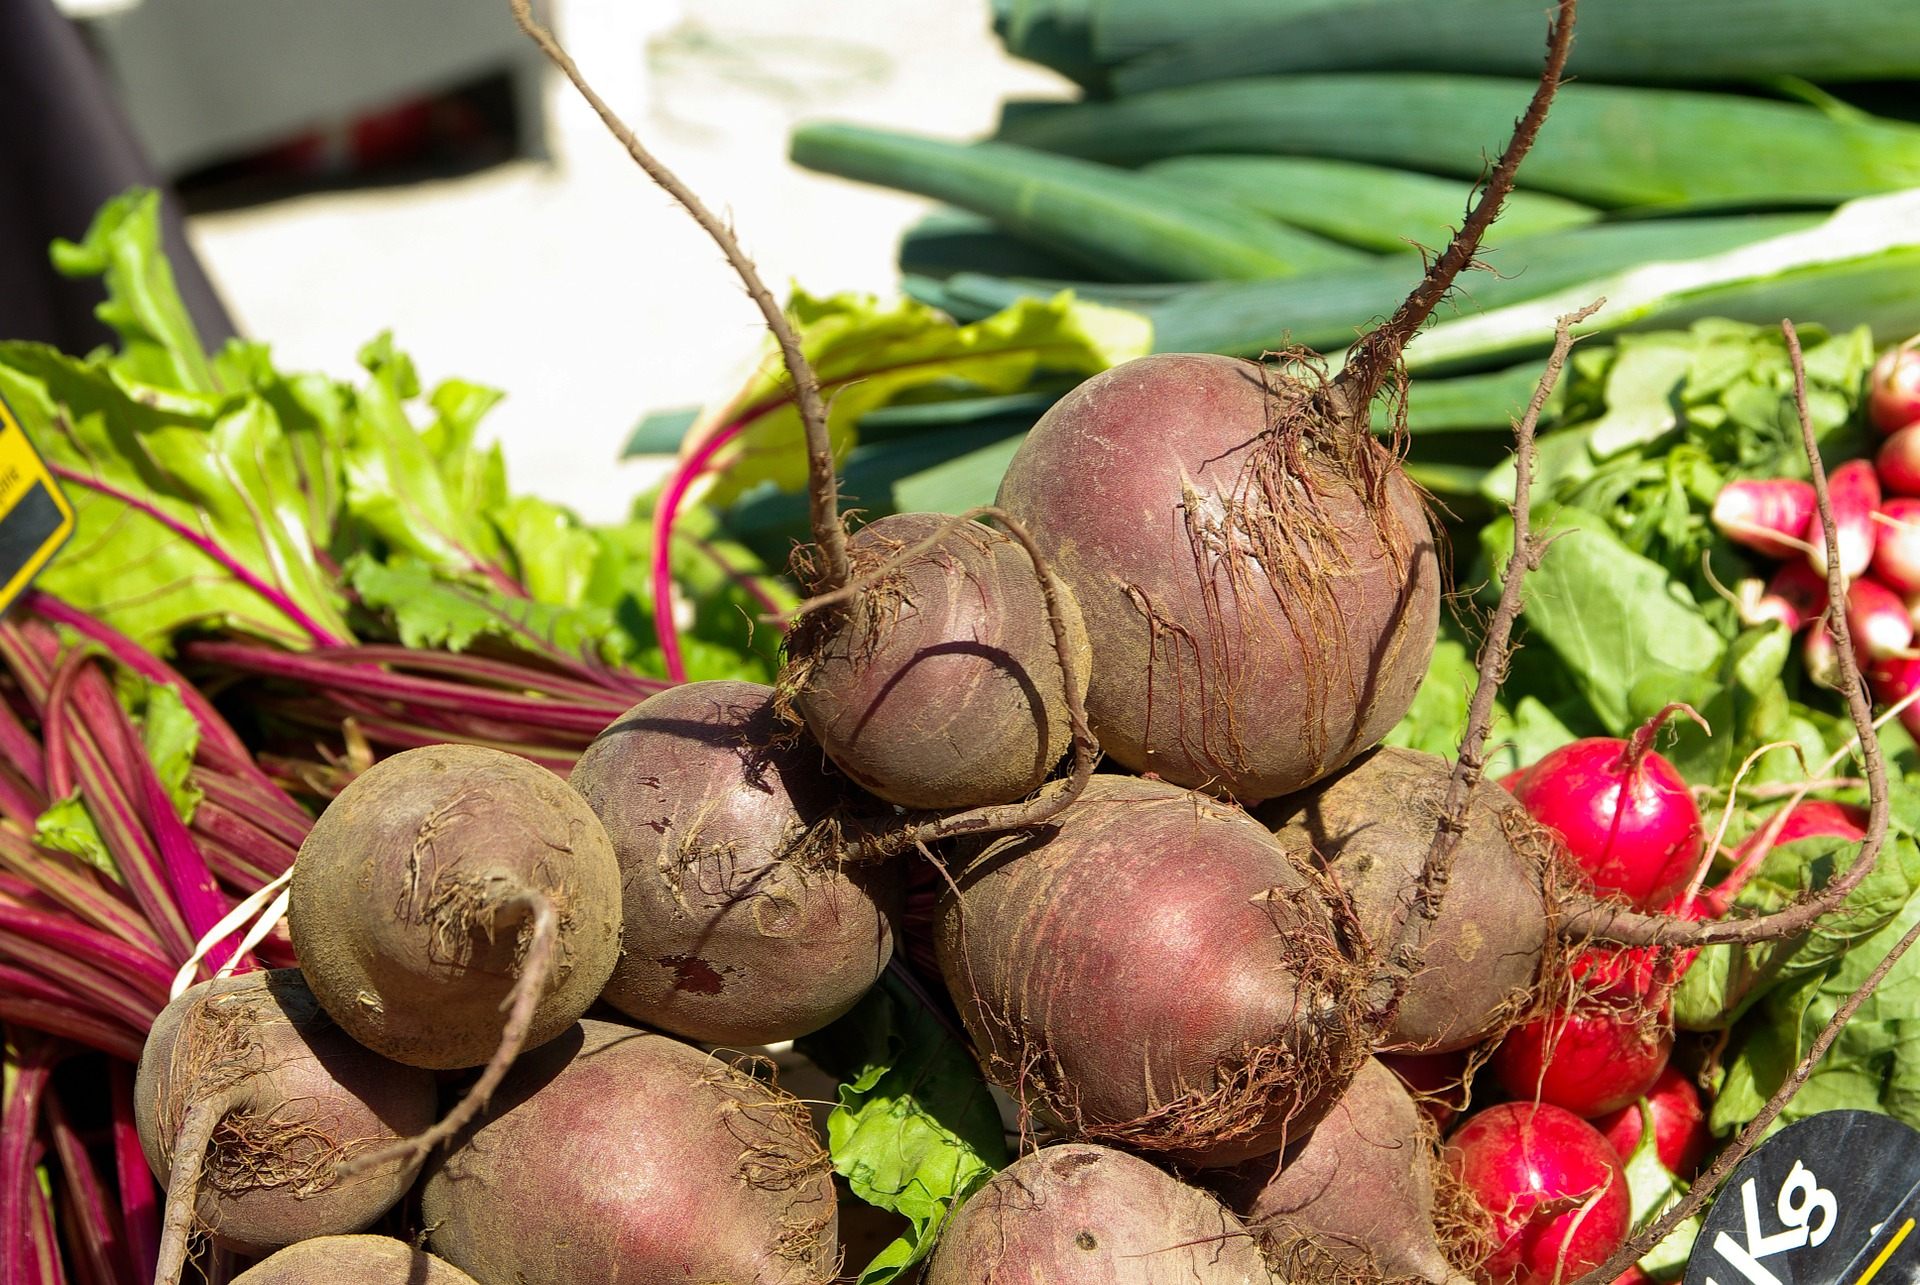 One Root Vegetable Is About To Kick Your Workout into Gear